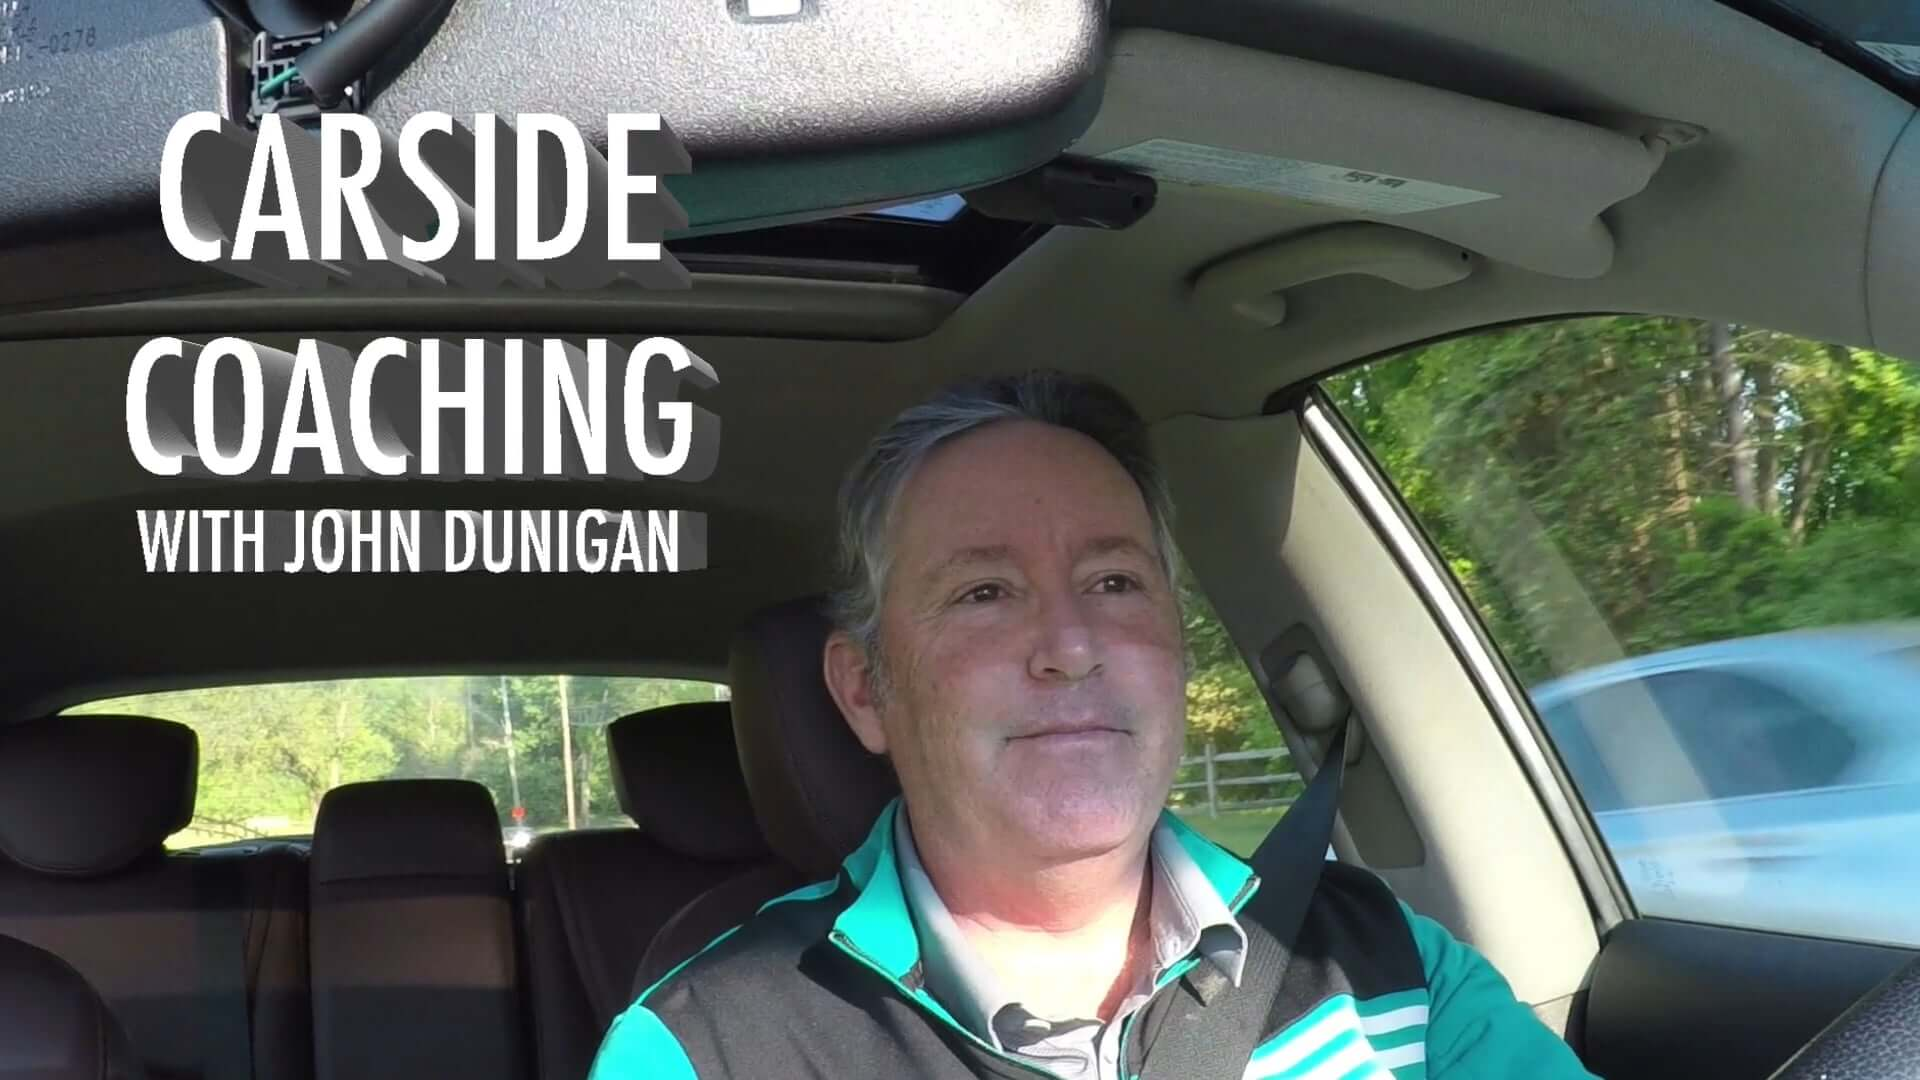 Carside Coaching with John Dunigan: Adversity